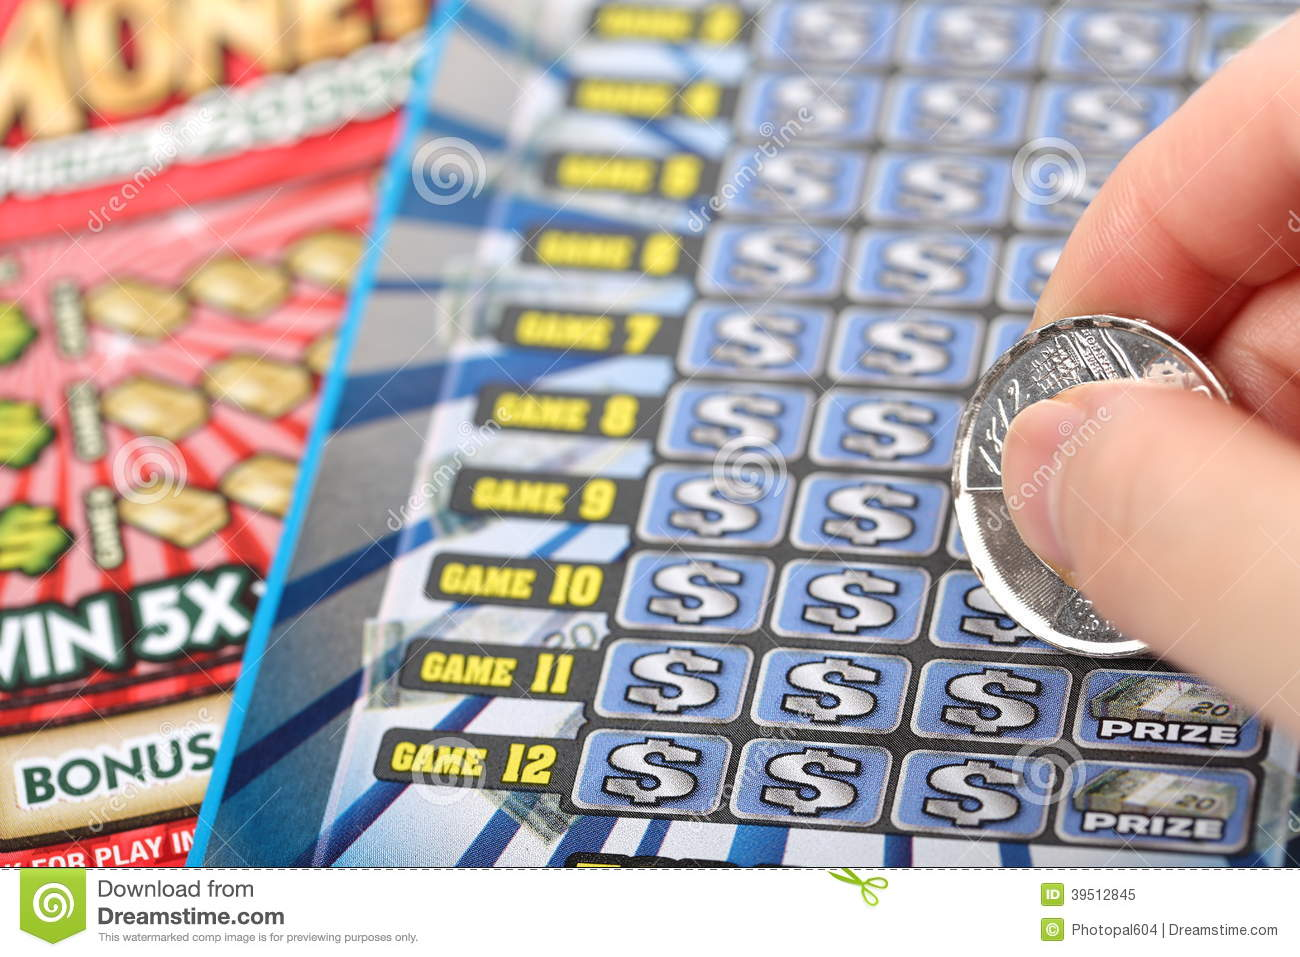 Scratching lottery ticket